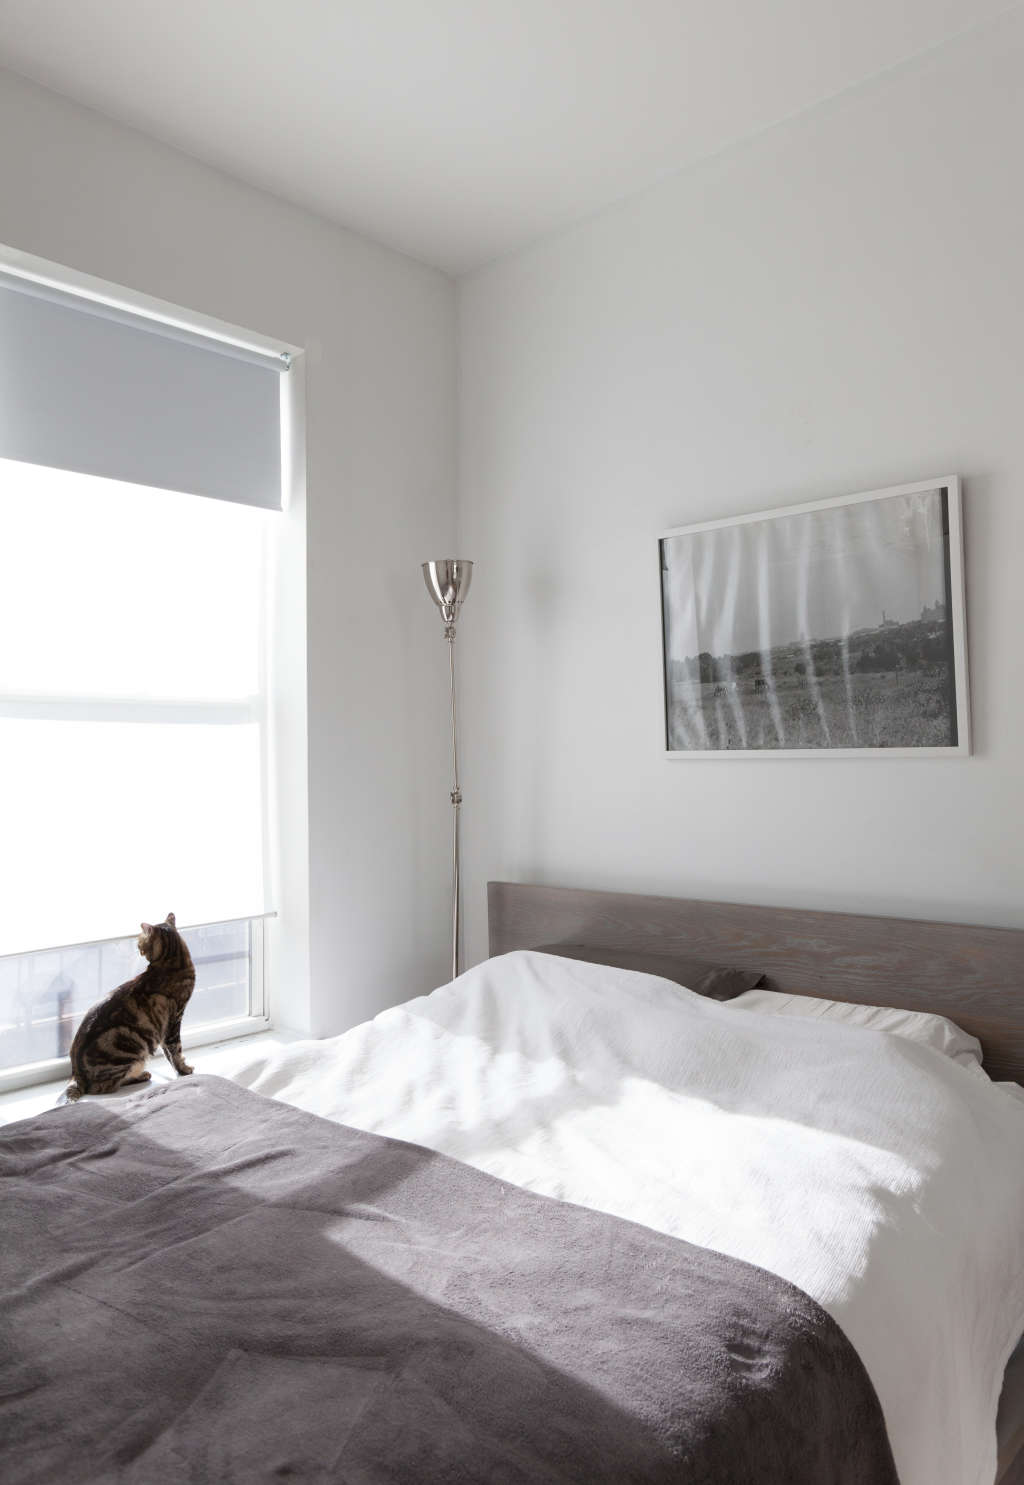 Pale or Powerful: See How Color Changes a Super Small Space